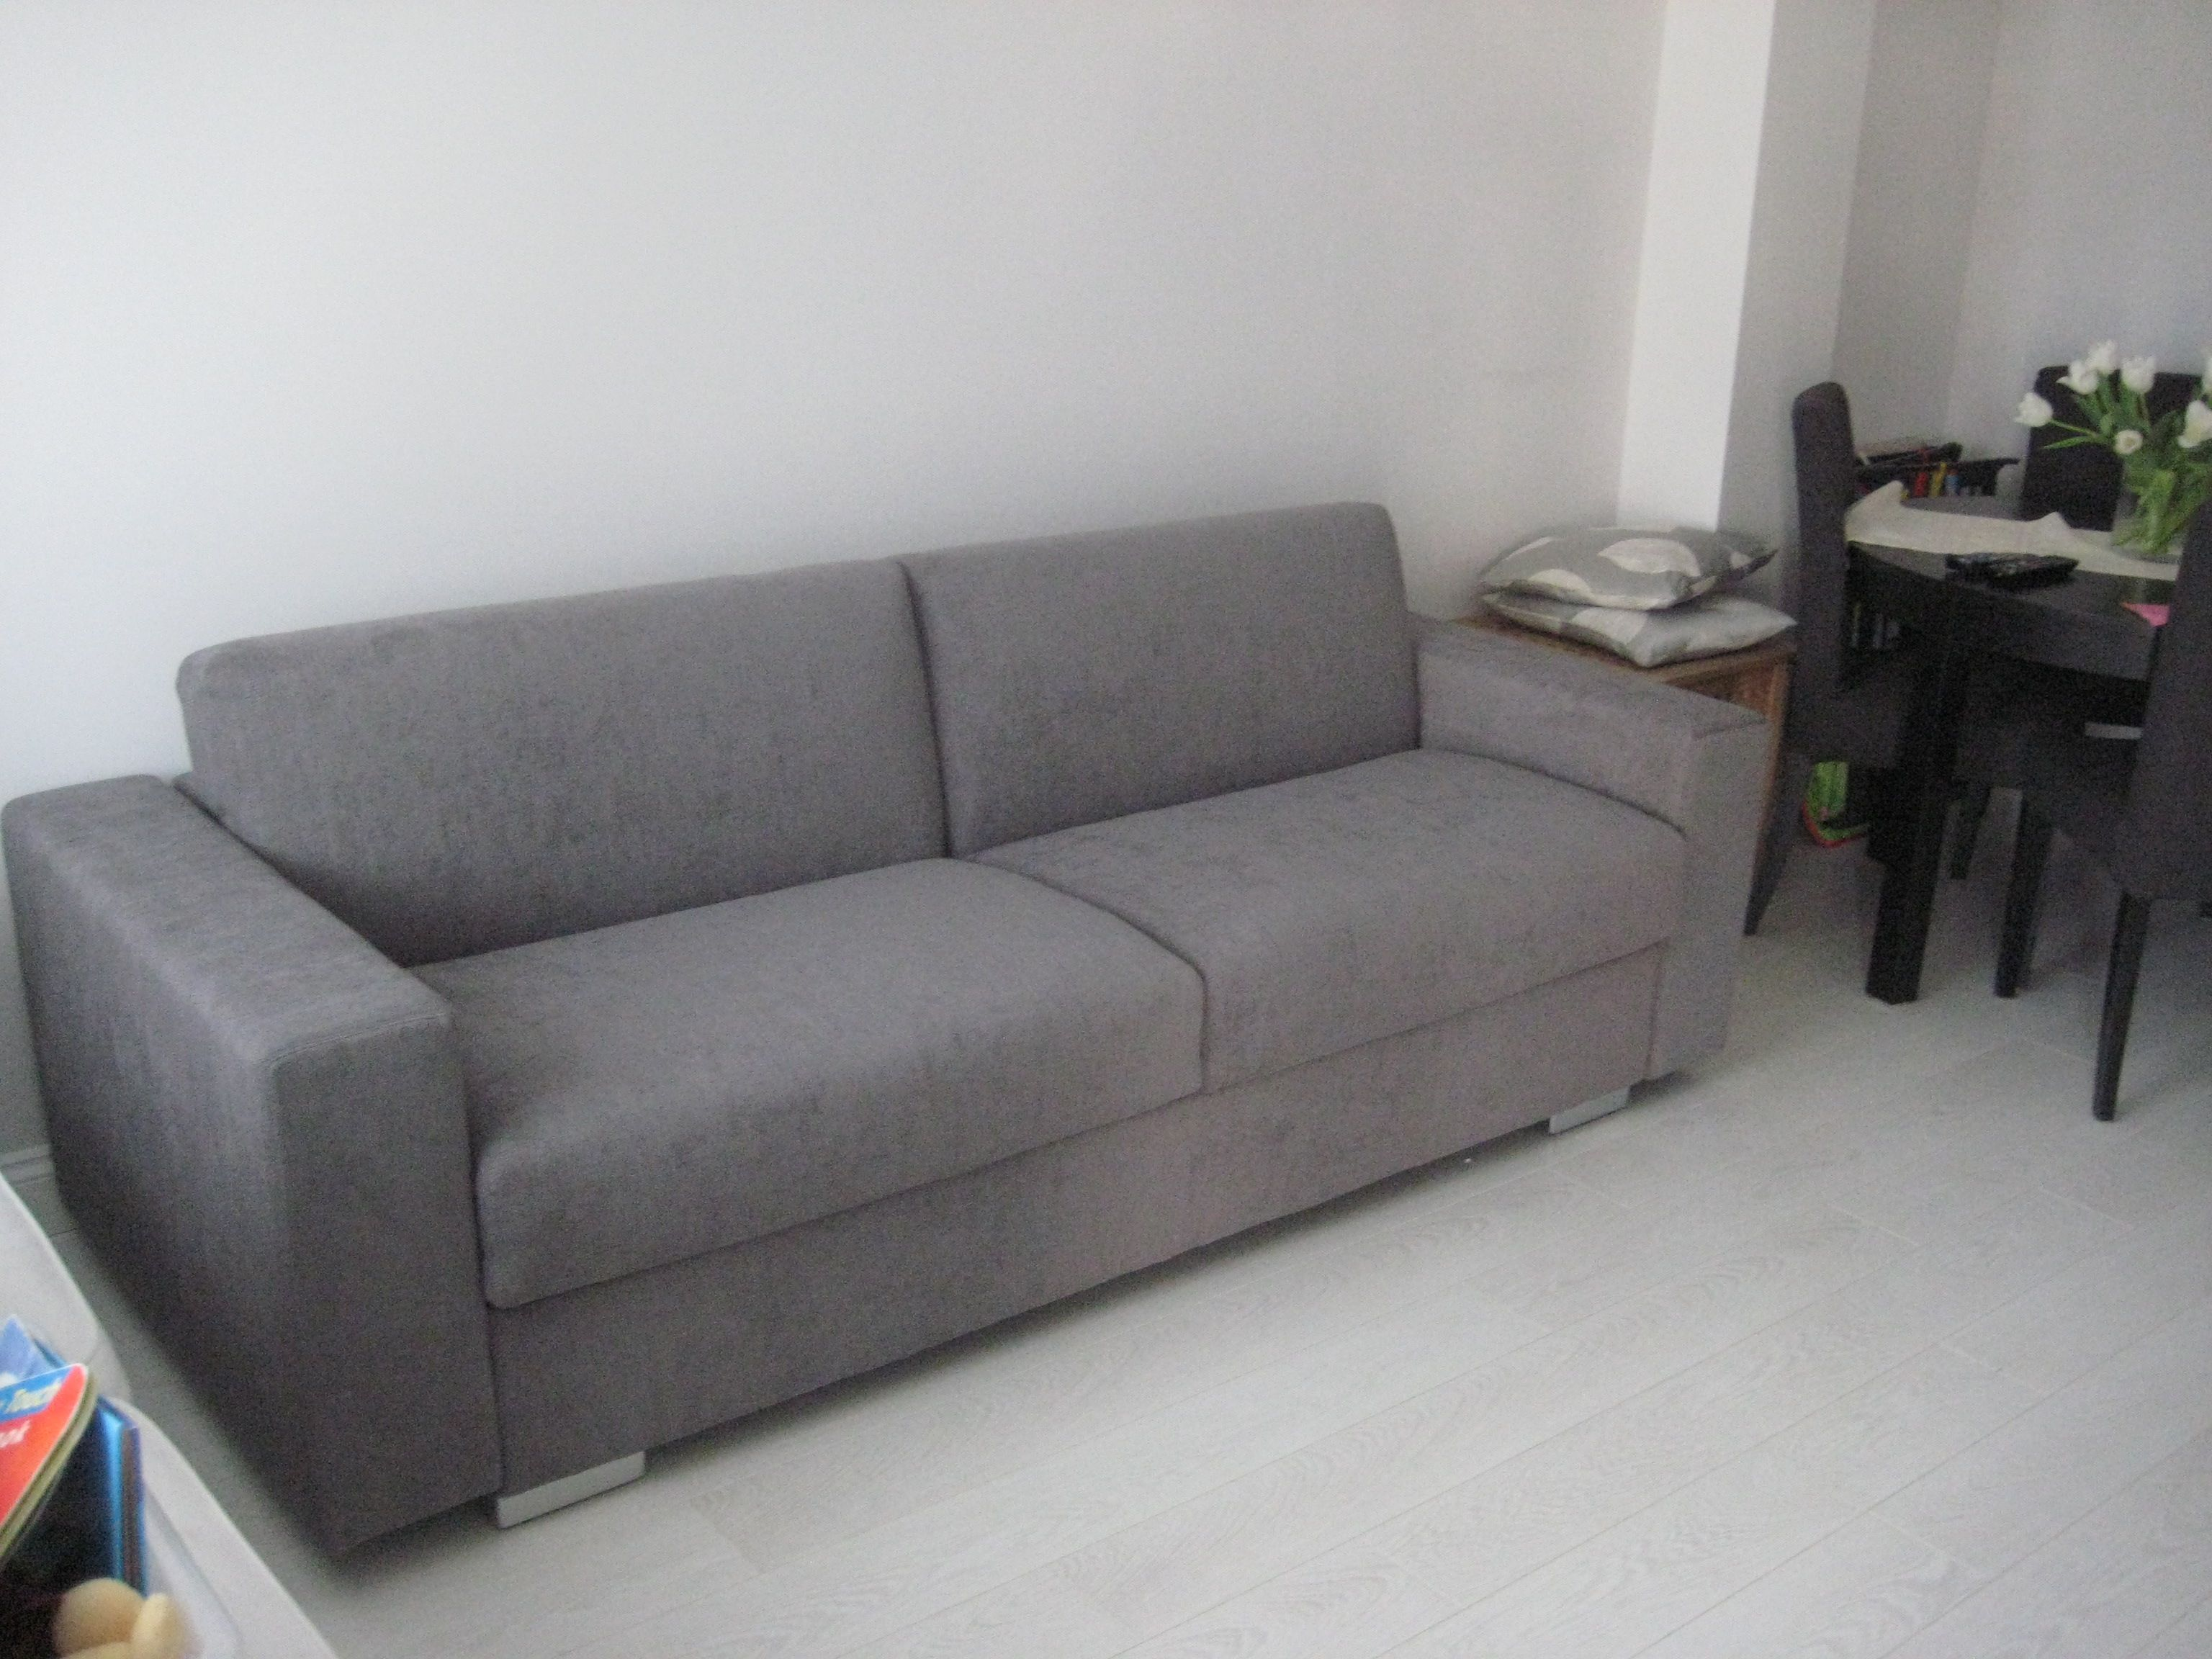 Sofa Beds All The Time Use Lario Luxury Sofa Bed Range Various Sizes